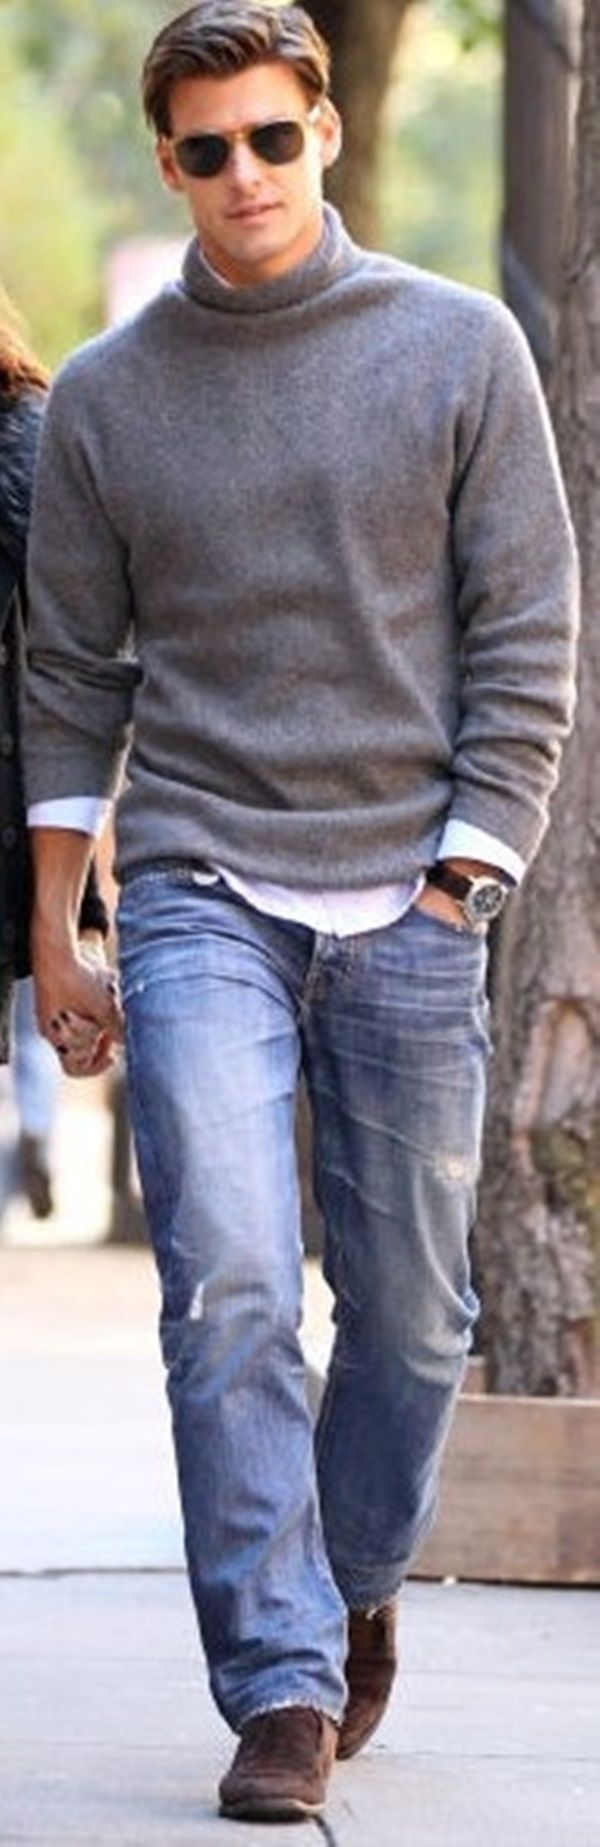 17 Best ideas about Guy Outfits on Pinterest   Men casual  Guy clothes and  Men s style. 17 Best ideas about Guy Outfits on Pinterest   Men casual  Guy